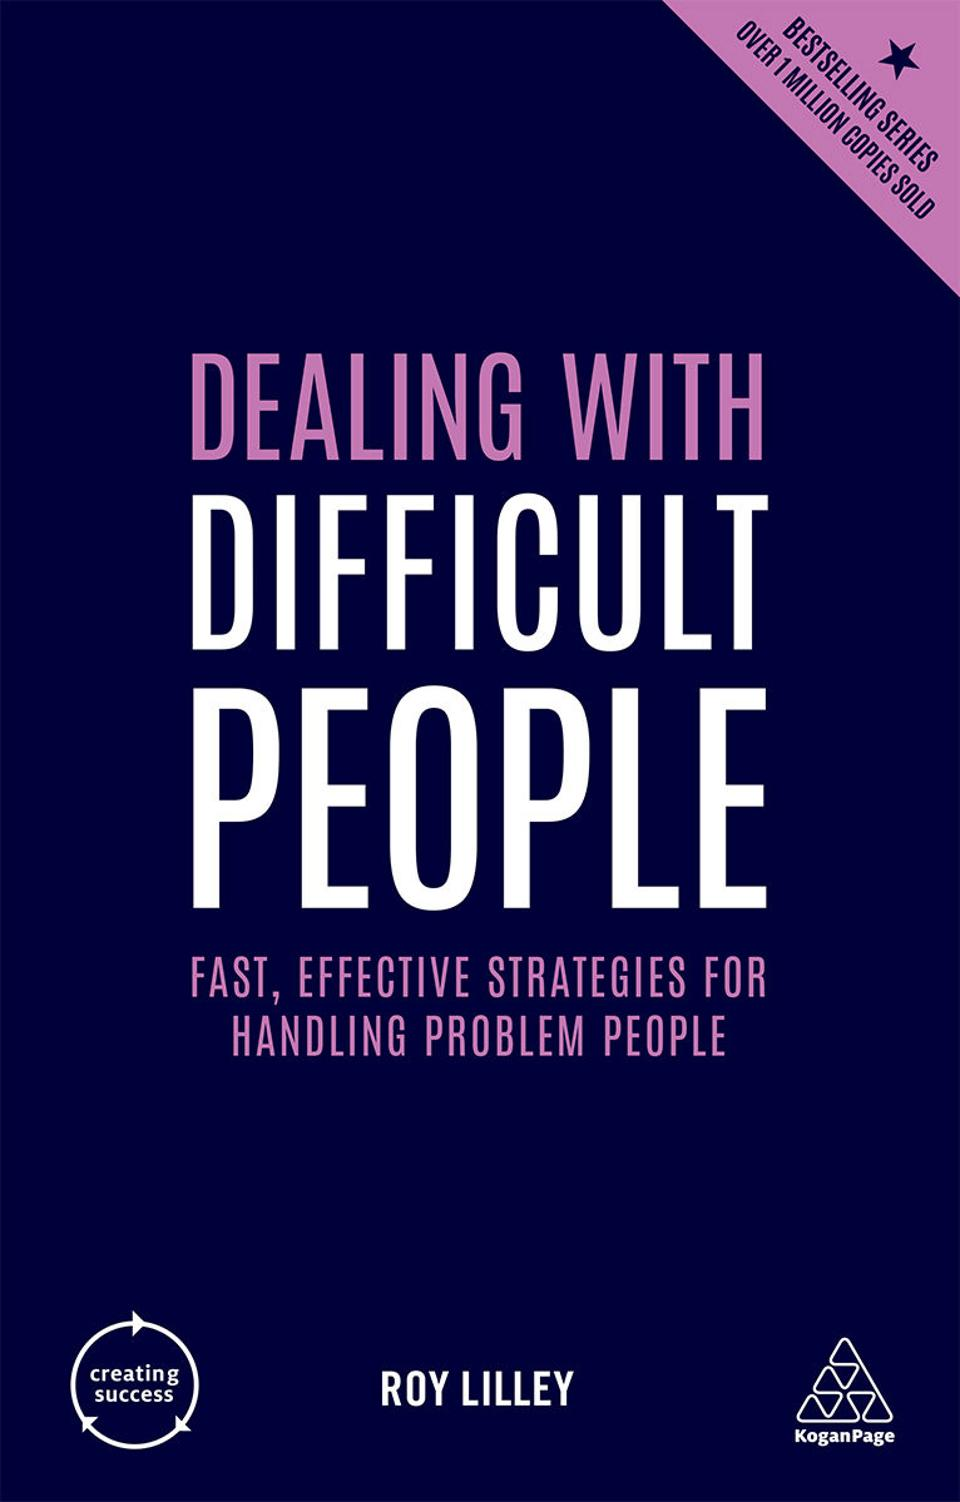 Dealing With Difficult People: Fast, Effective Strategies for Handling Problem People by Ron Lilley